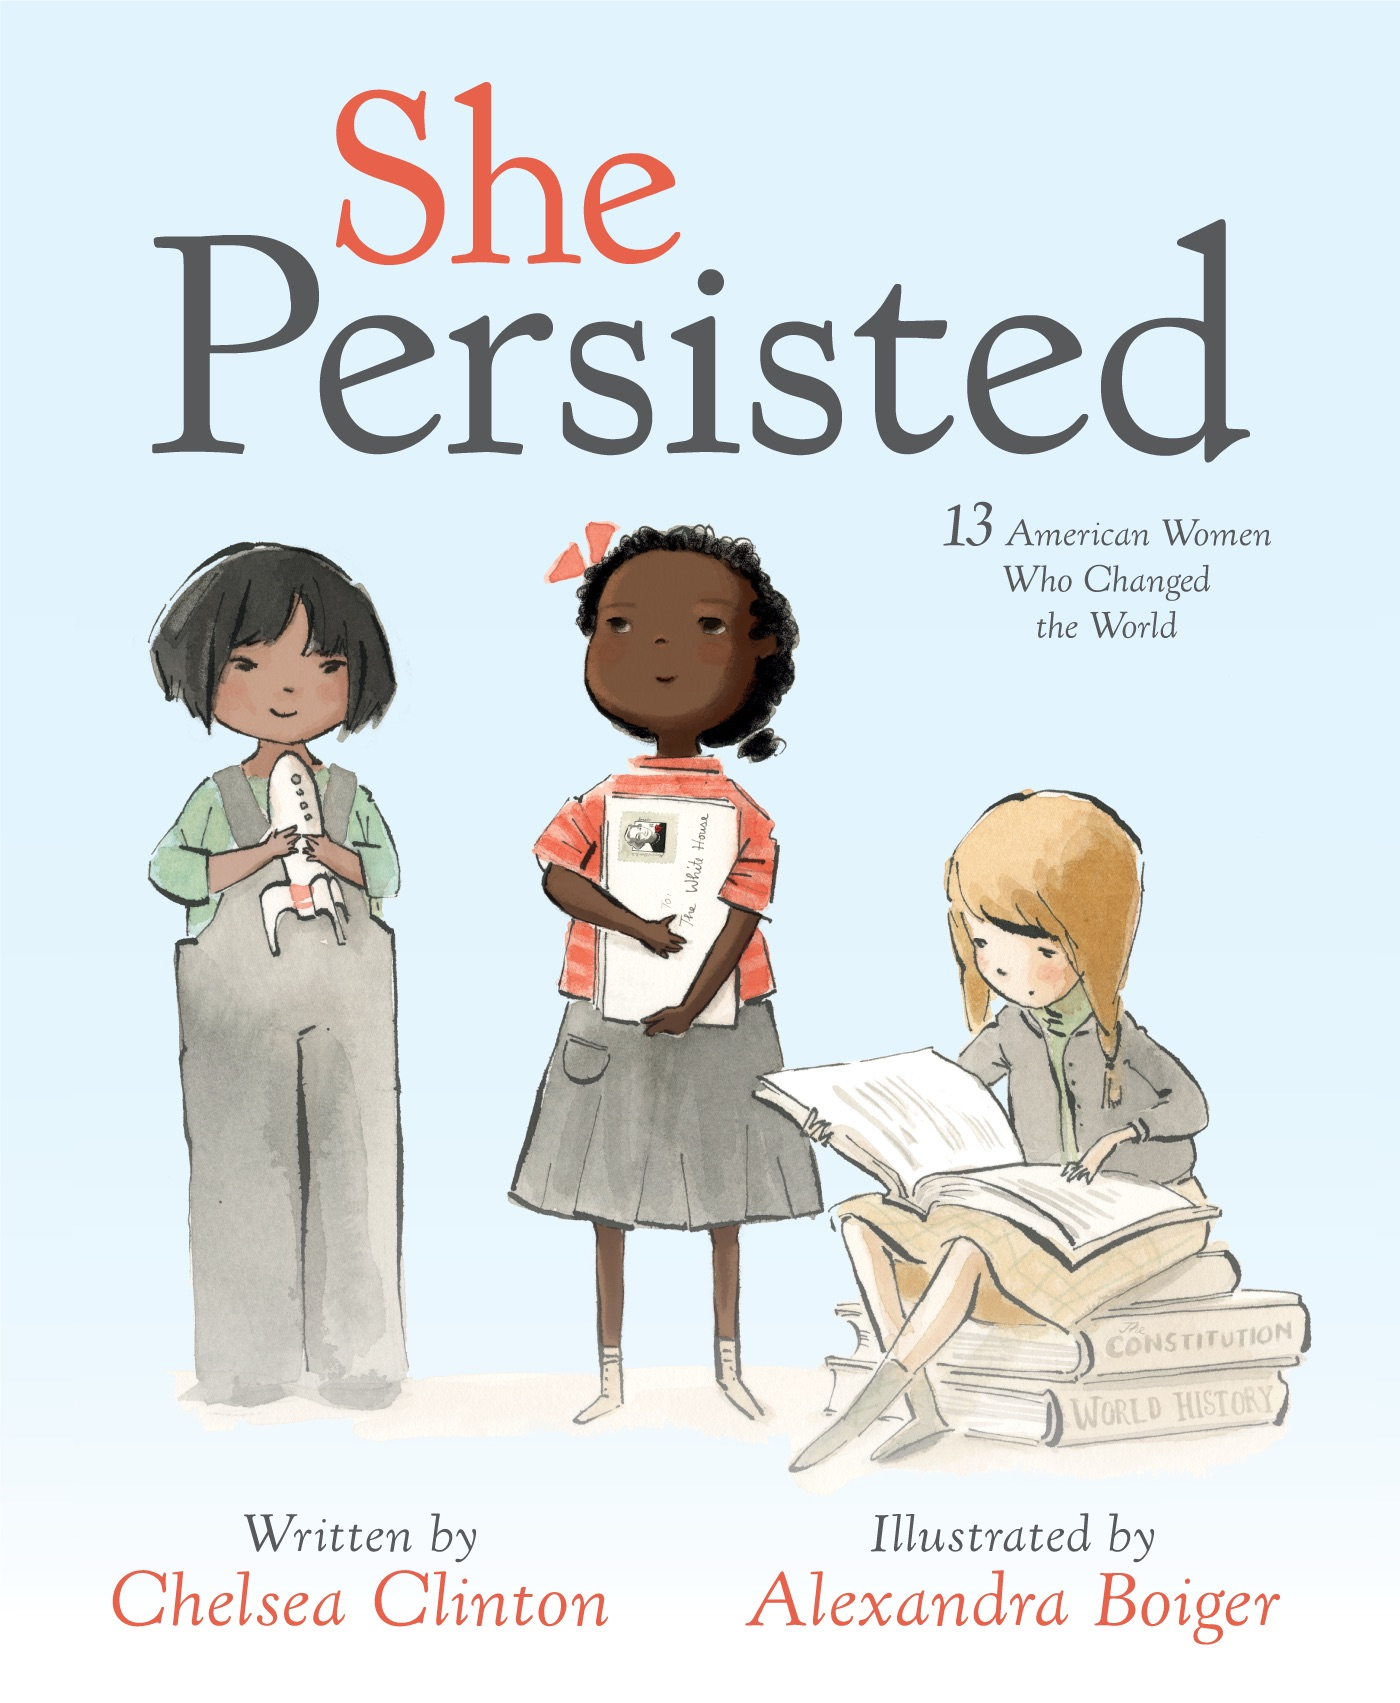 Children S Book Covers Alan Powers : She persisted new children s book by chelsea clinton